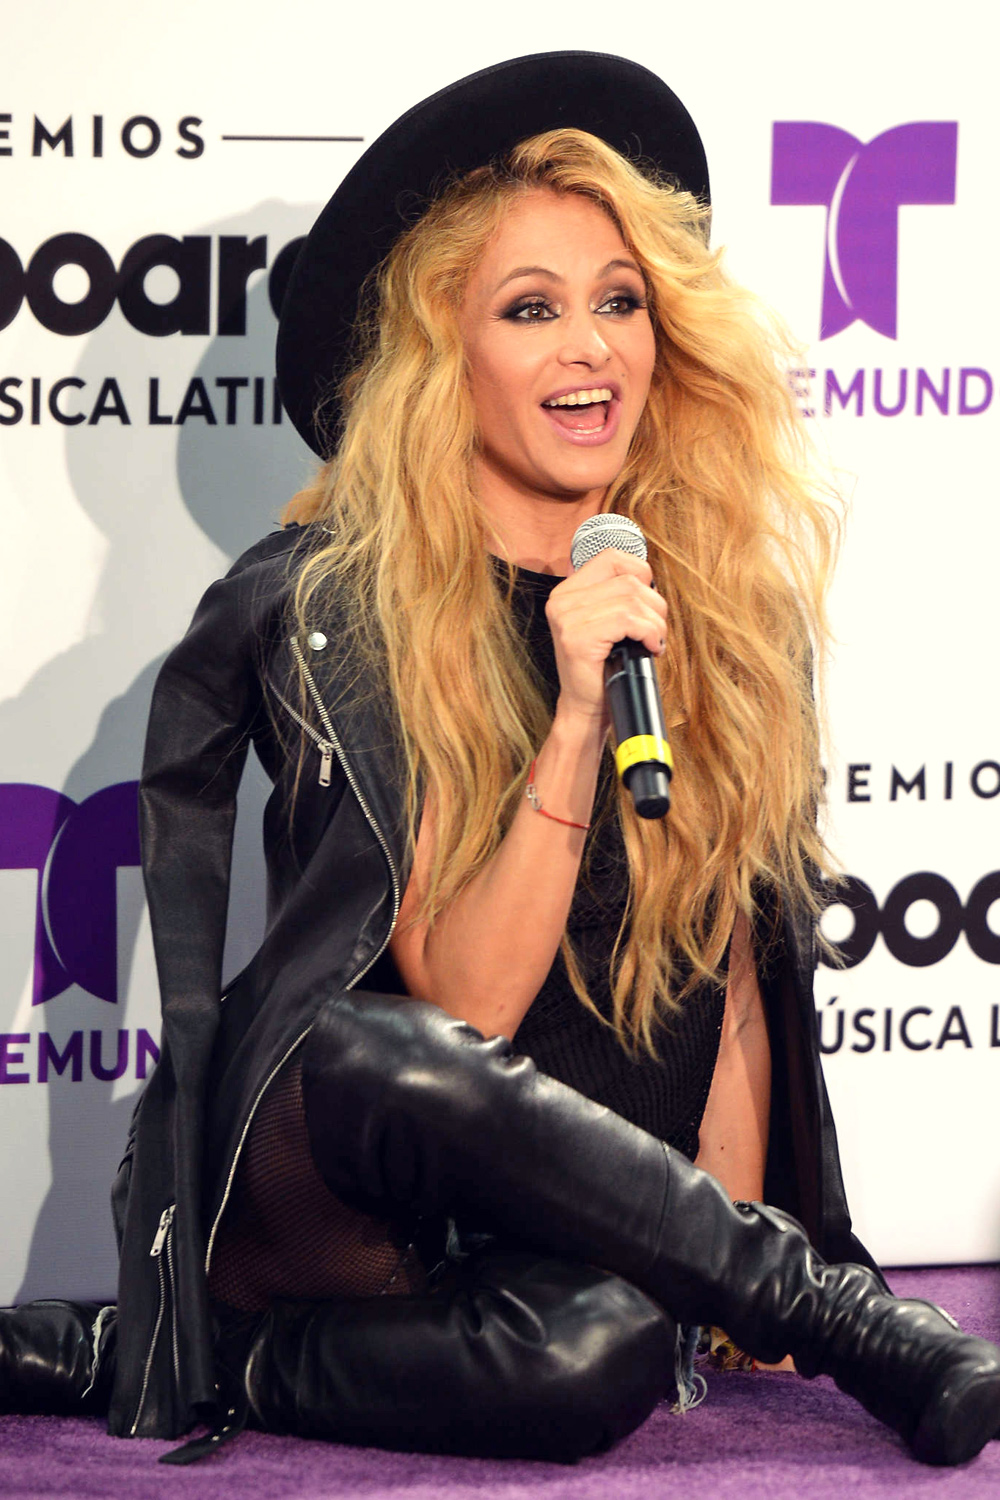 Paulina Rubio attends Billboard Latin Music Awards